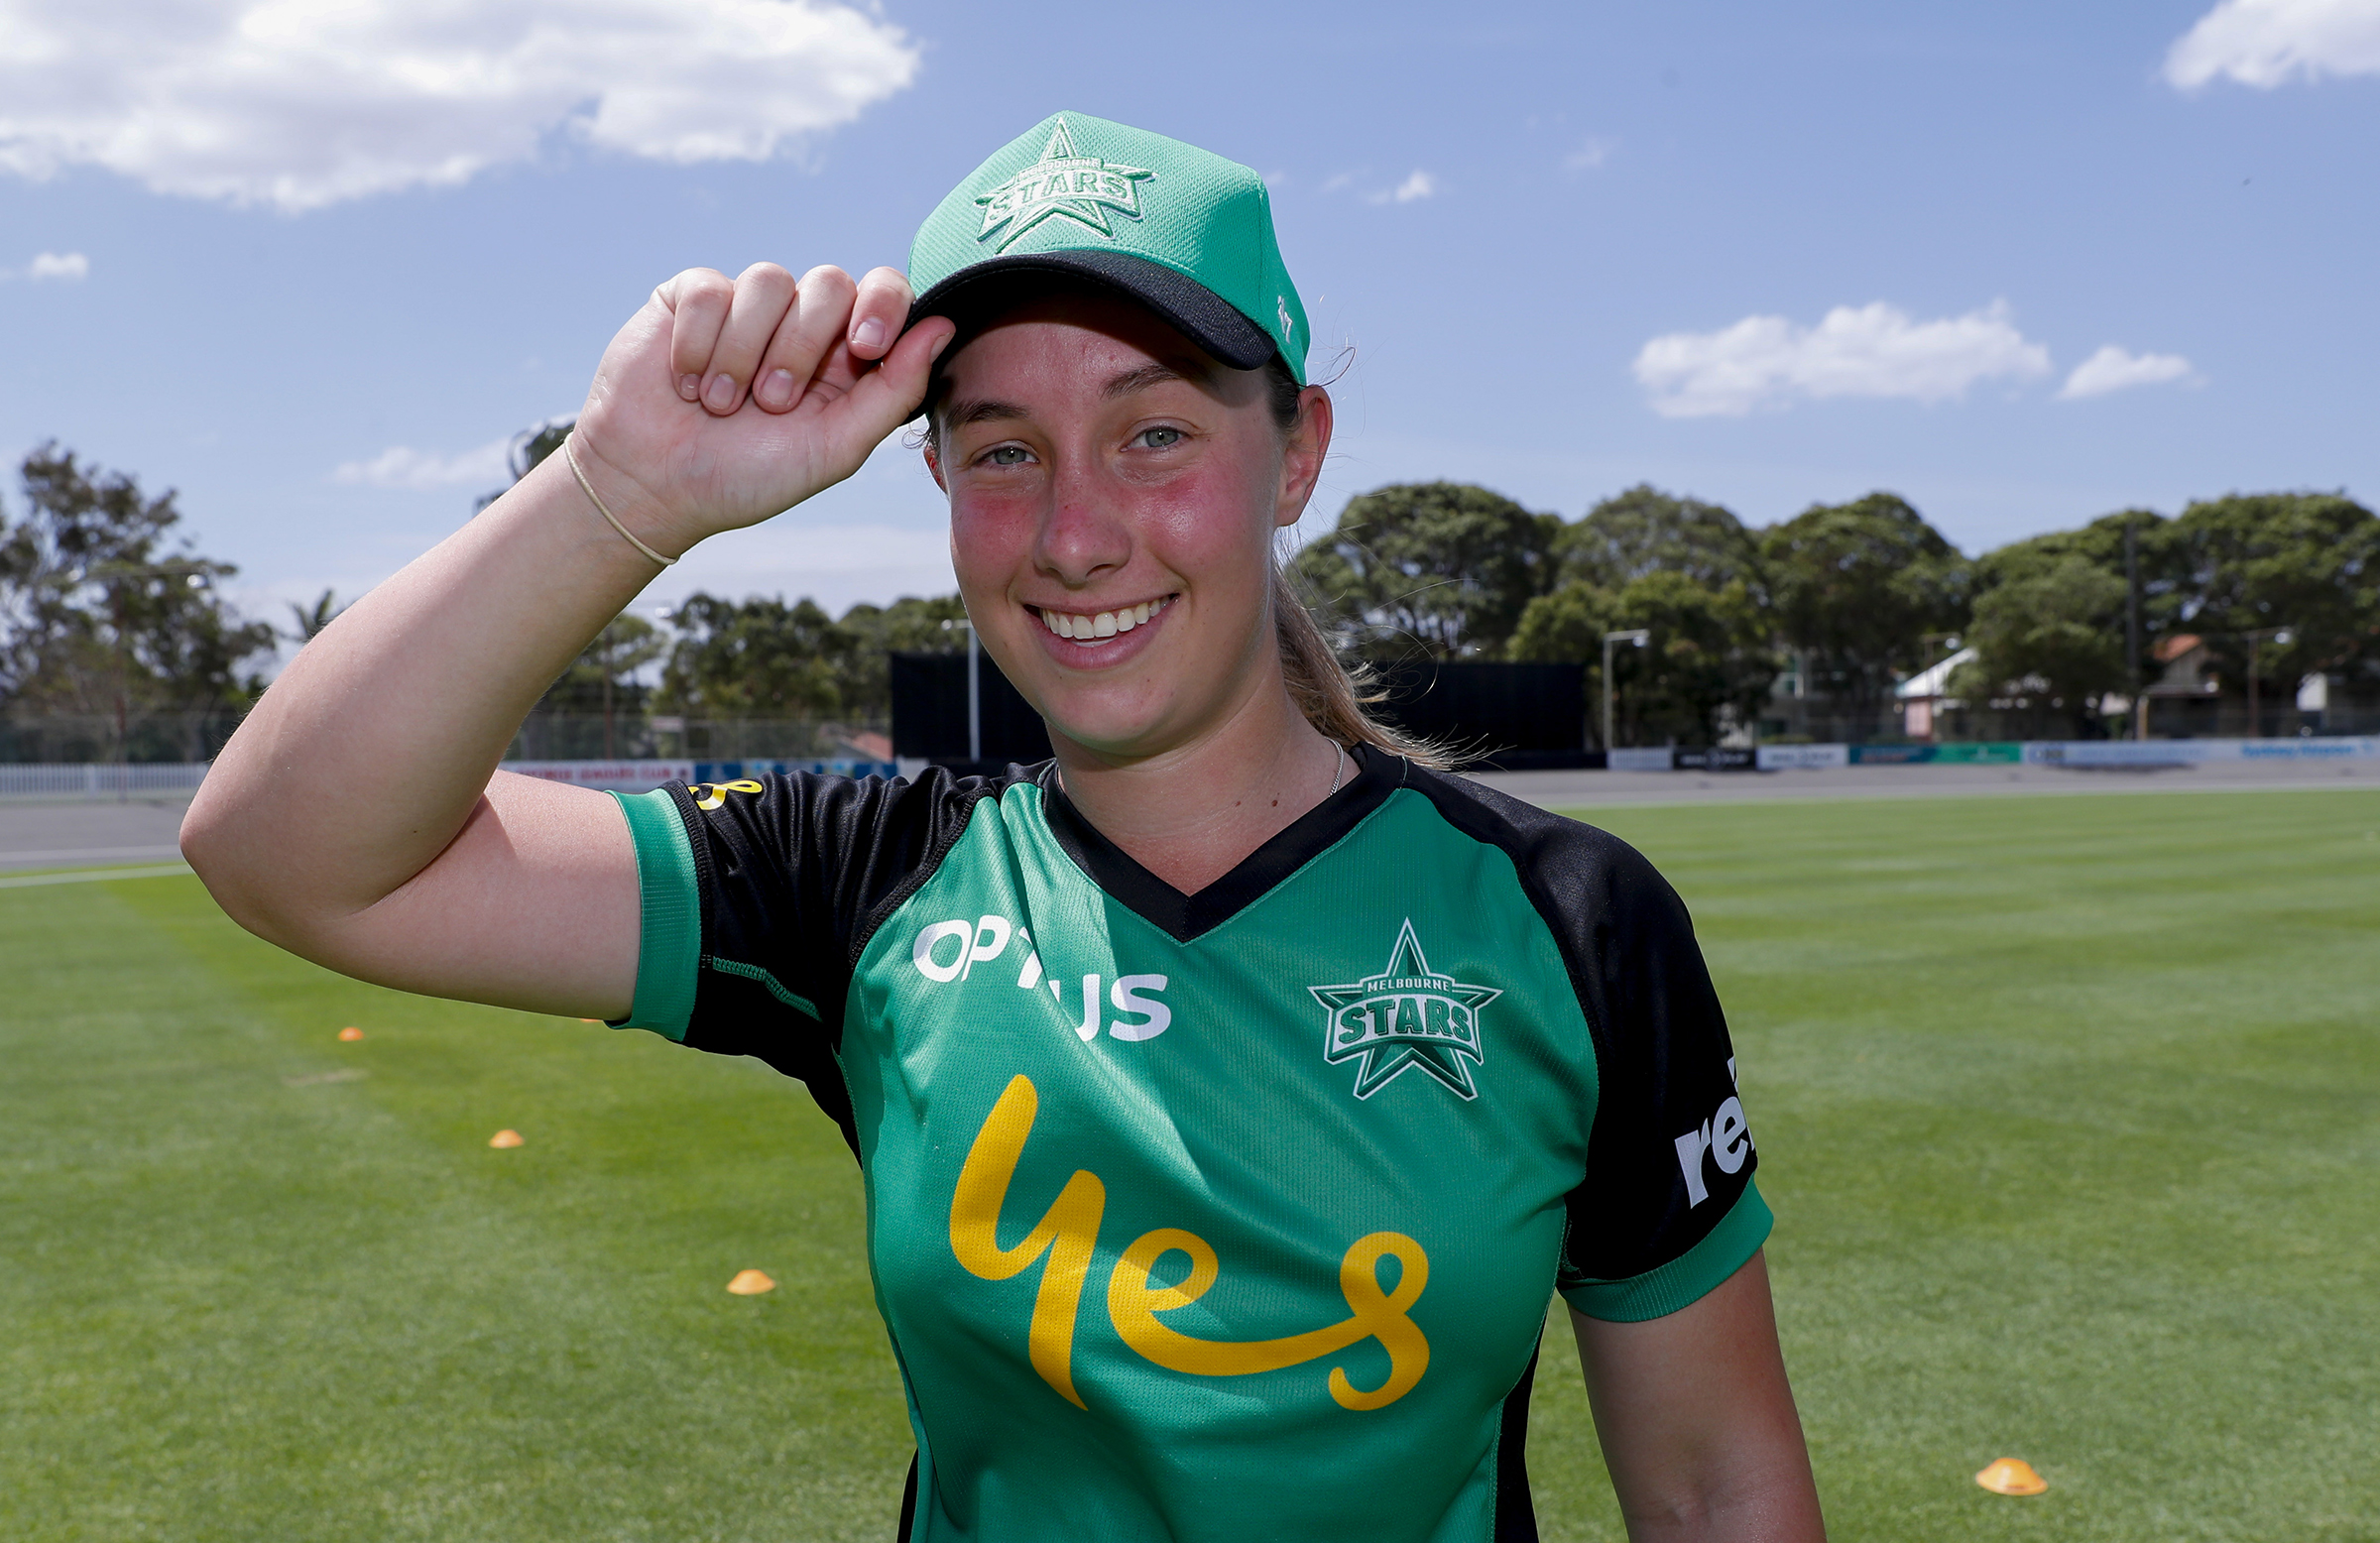 Penna receives her Stars cap on WBBL debut // Getty